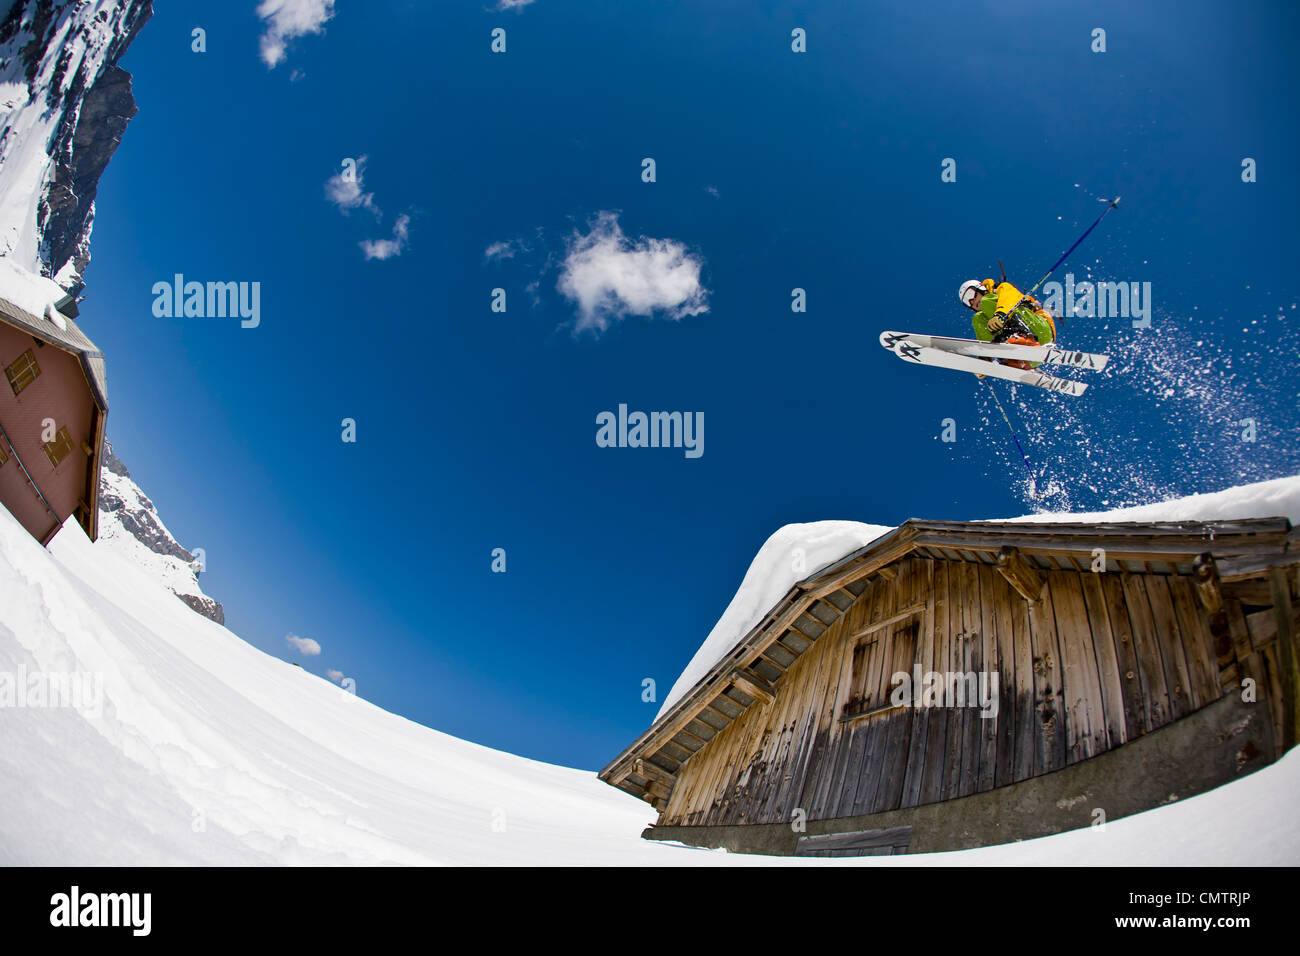 Man jumping with skies - Stock Image